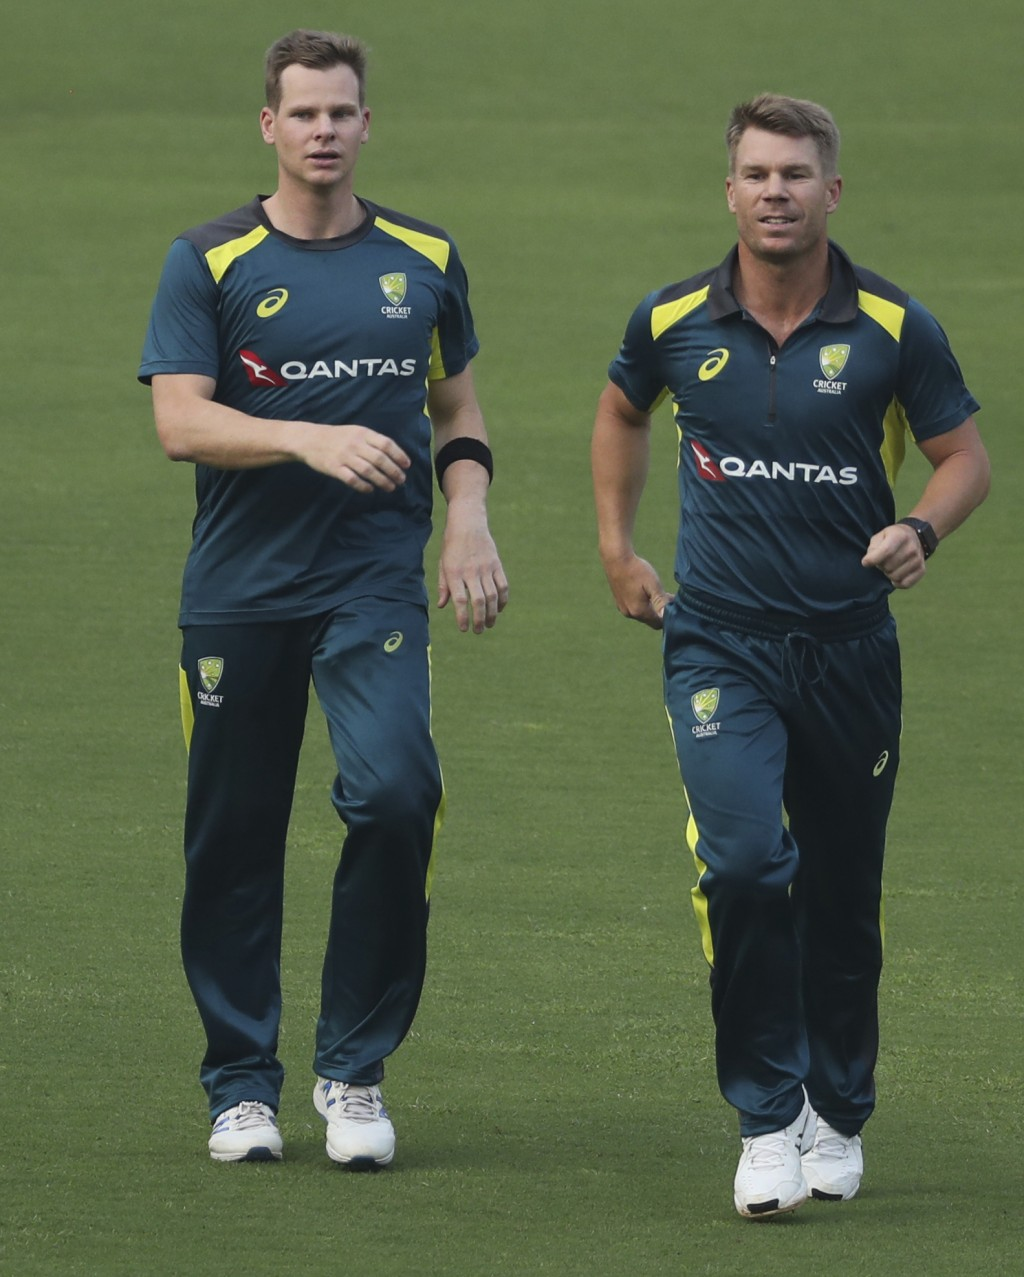 FILE - In this Saturday, Jan. 11, 2020 file photo, Australia's Steve Smith, left, and David Warner attend a training session in Mumbai, India. David W...